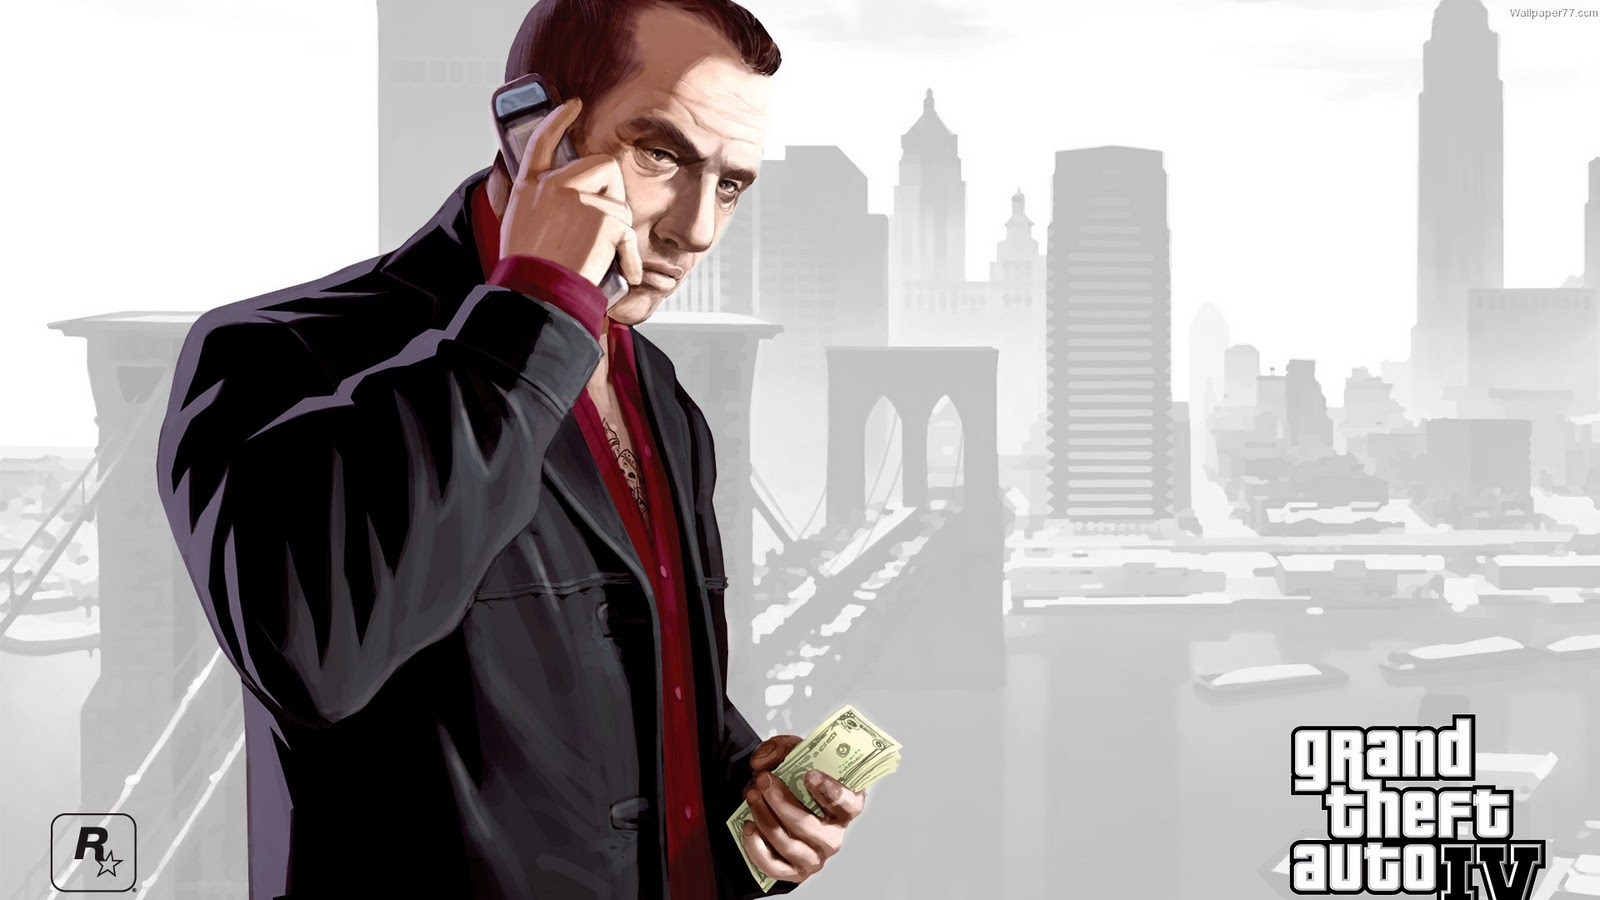 gta 4 wallpaper 1080p See To World 1600x900